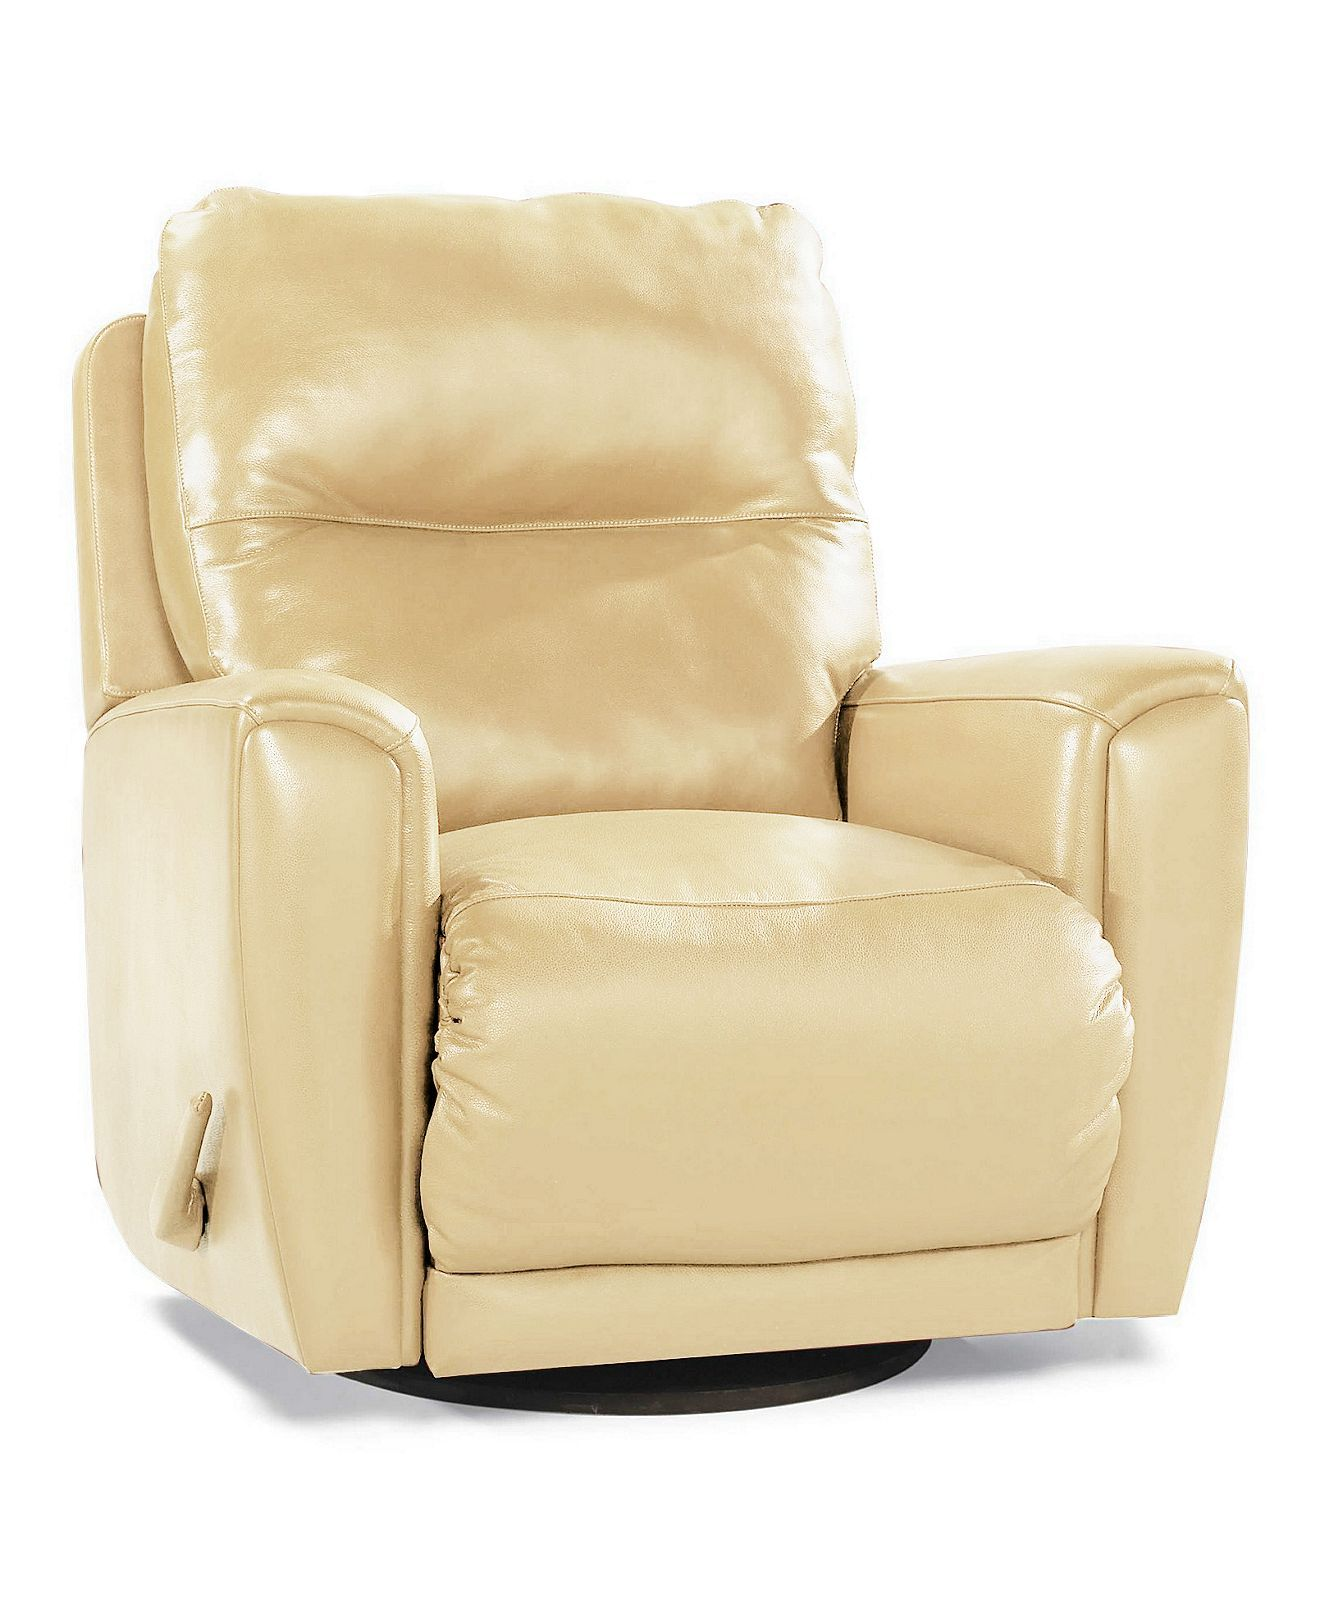 havana recliner chair swivel glider chairs recliners furniture macy 39 s homey. Black Bedroom Furniture Sets. Home Design Ideas